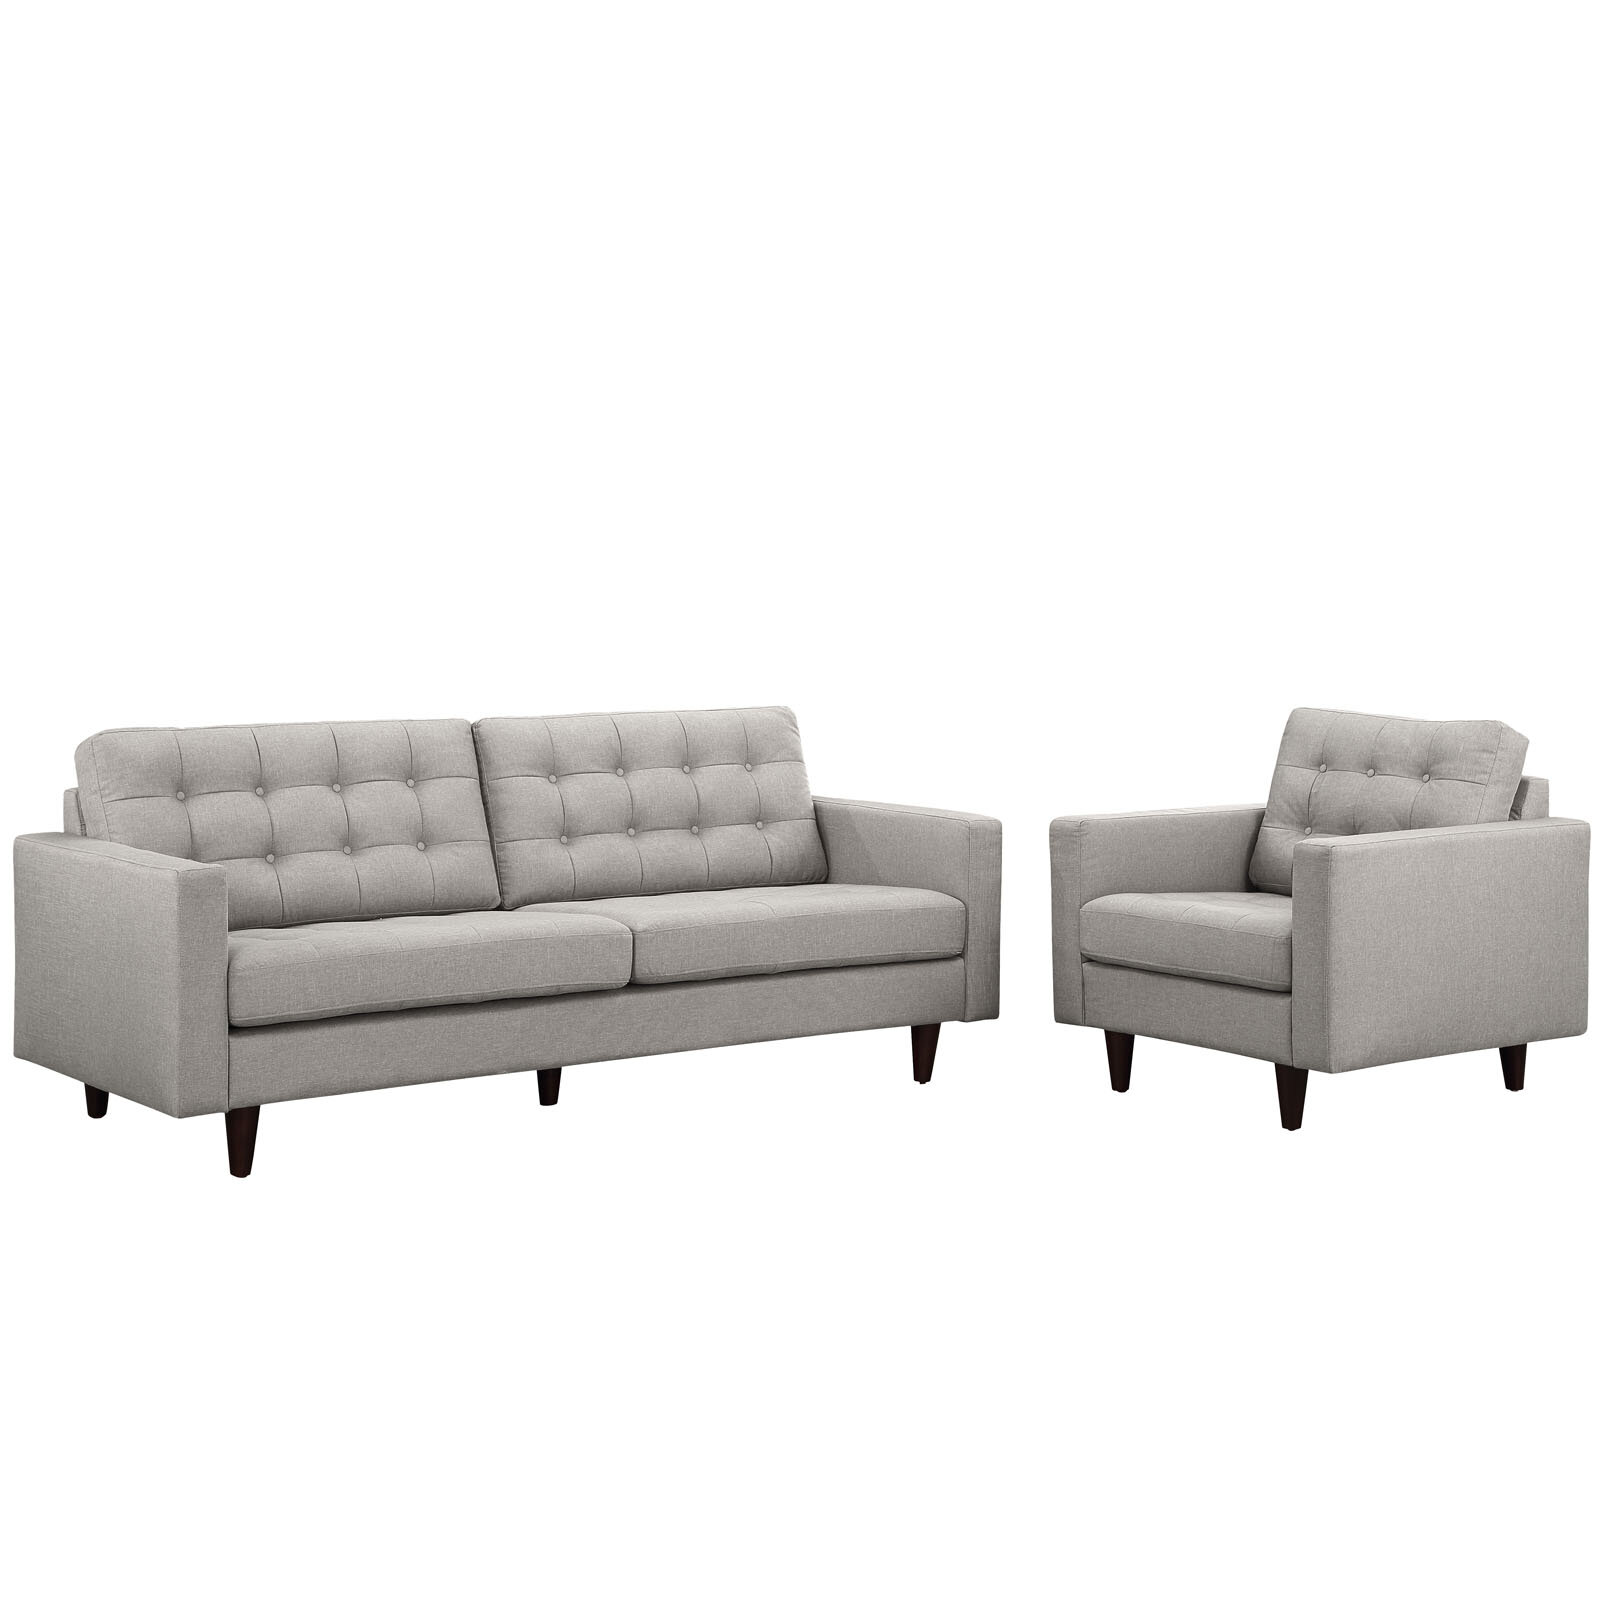 Modway Princess 2 Piece Living Room Set & Reviews